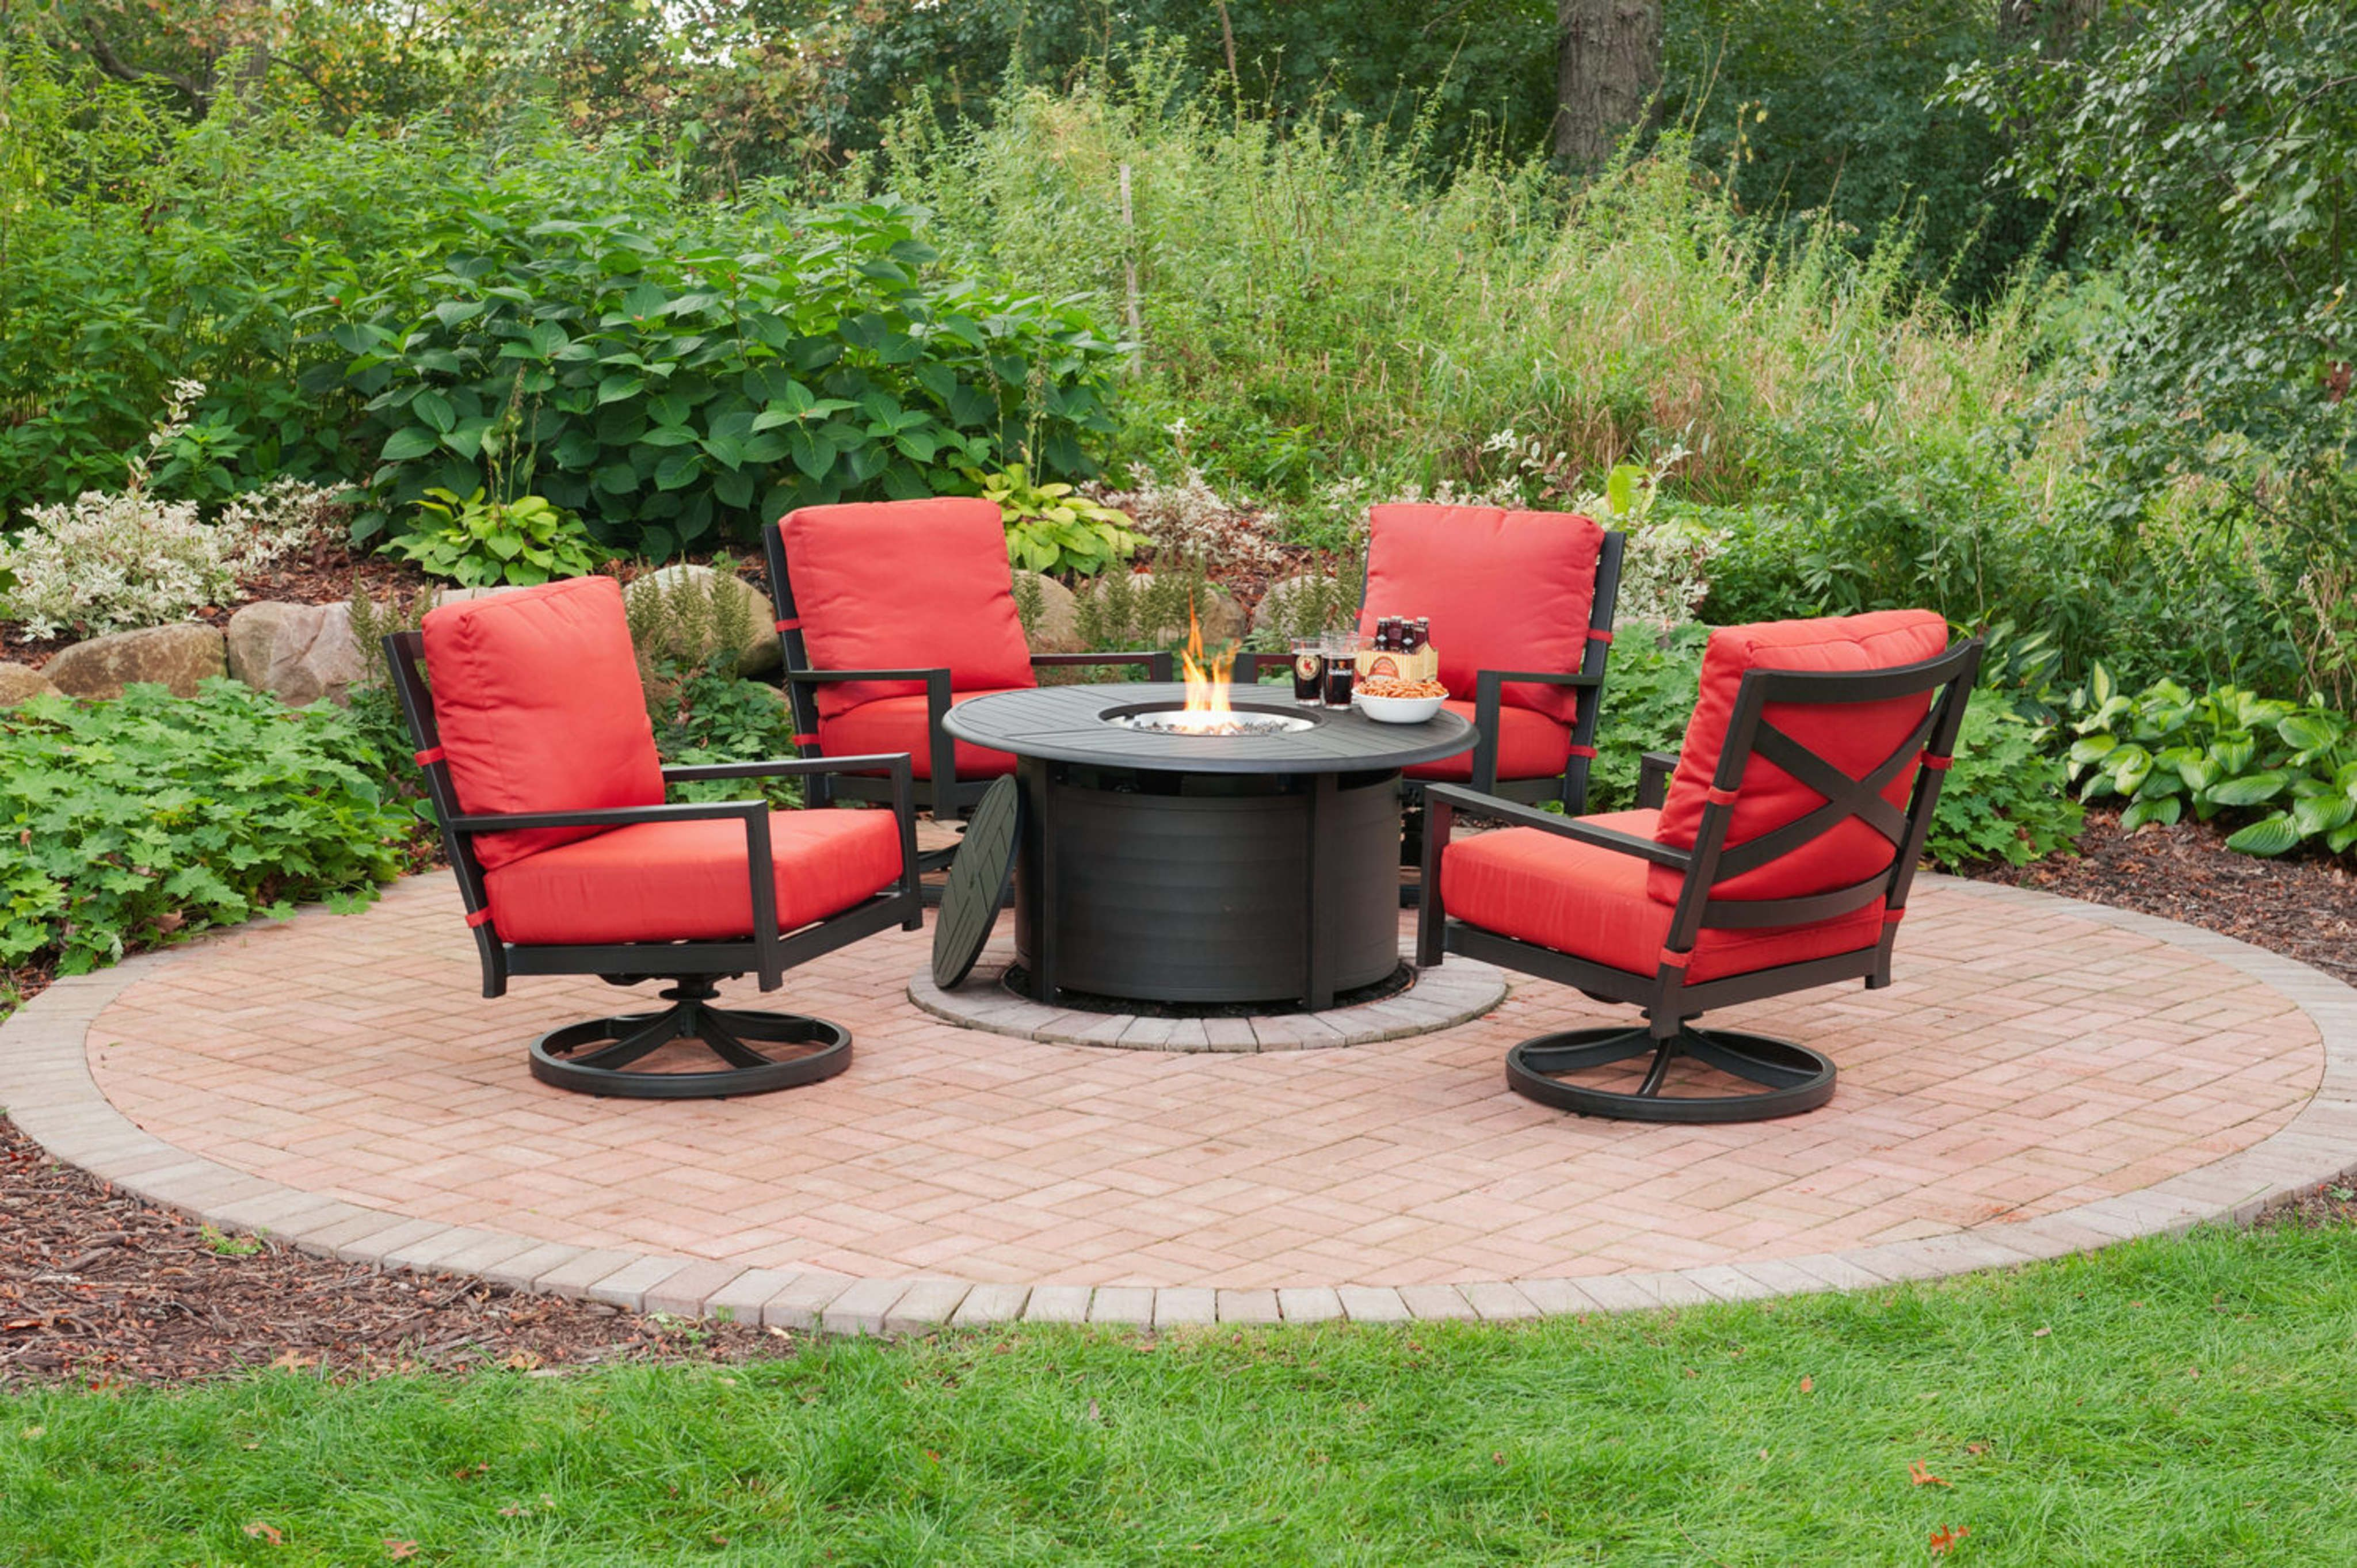 Patio Trends Resin Patio Furniture Patio Fire Table